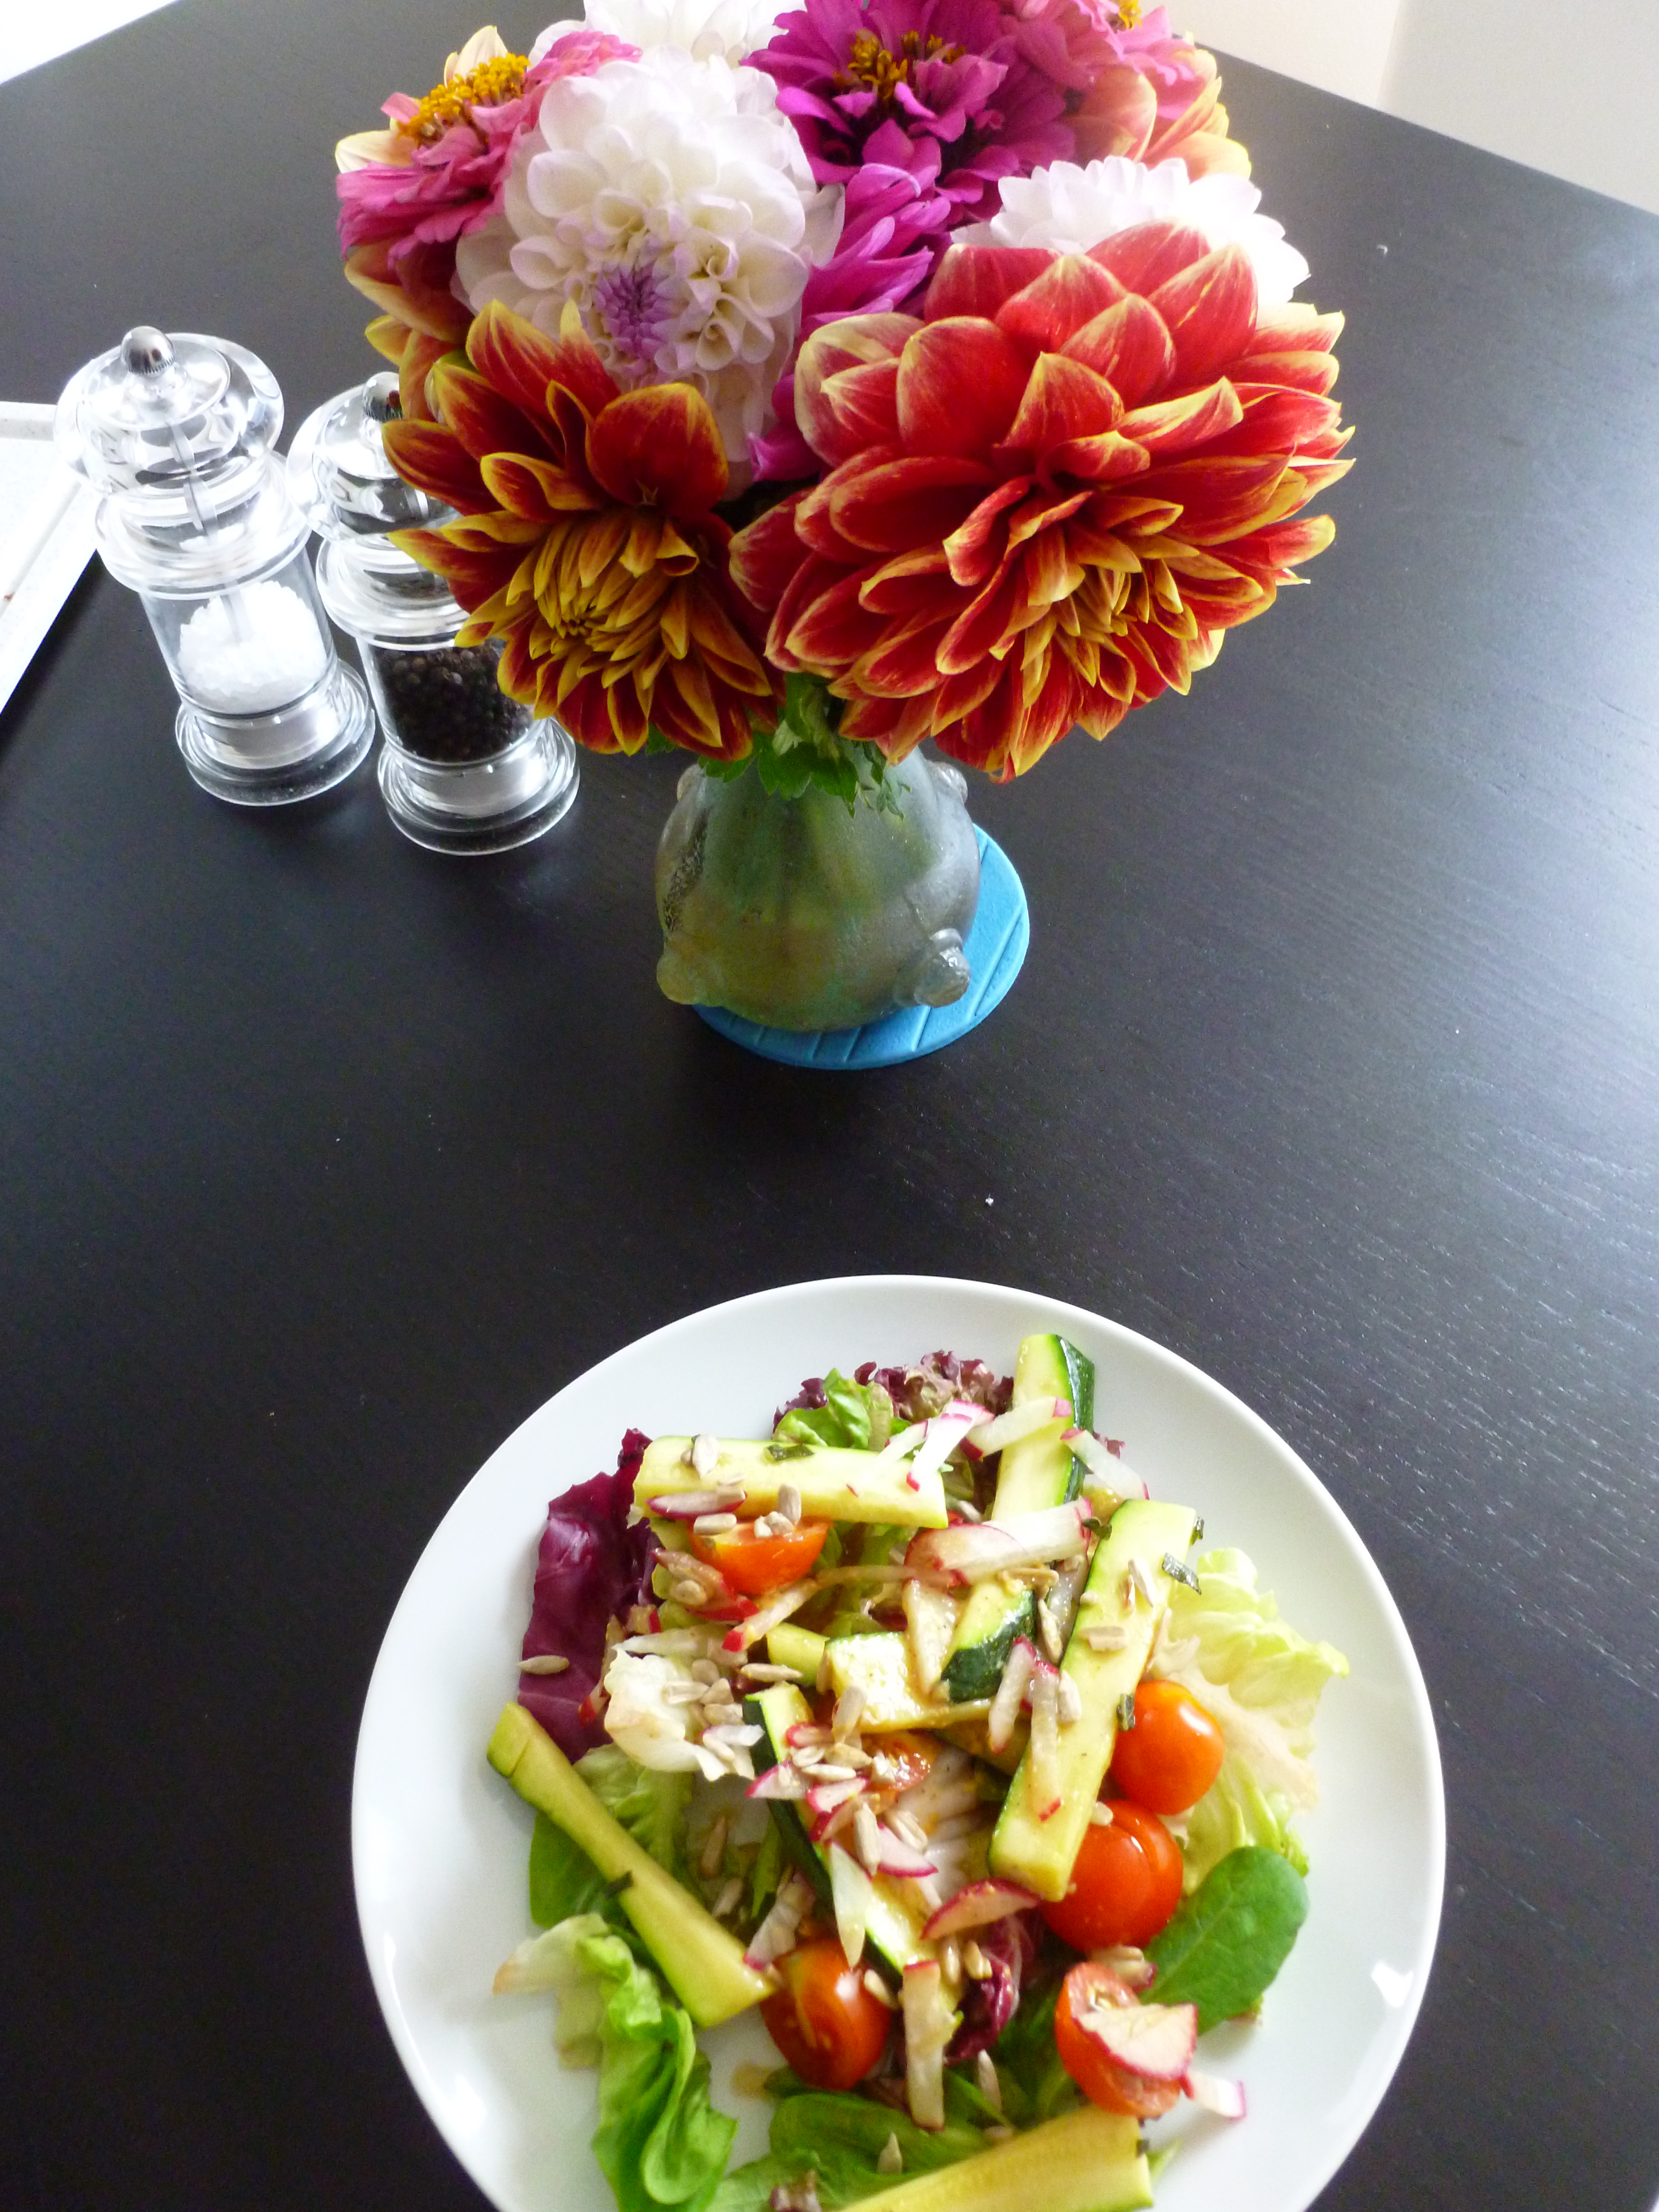 Flowers and Salad - a perfect colour combination